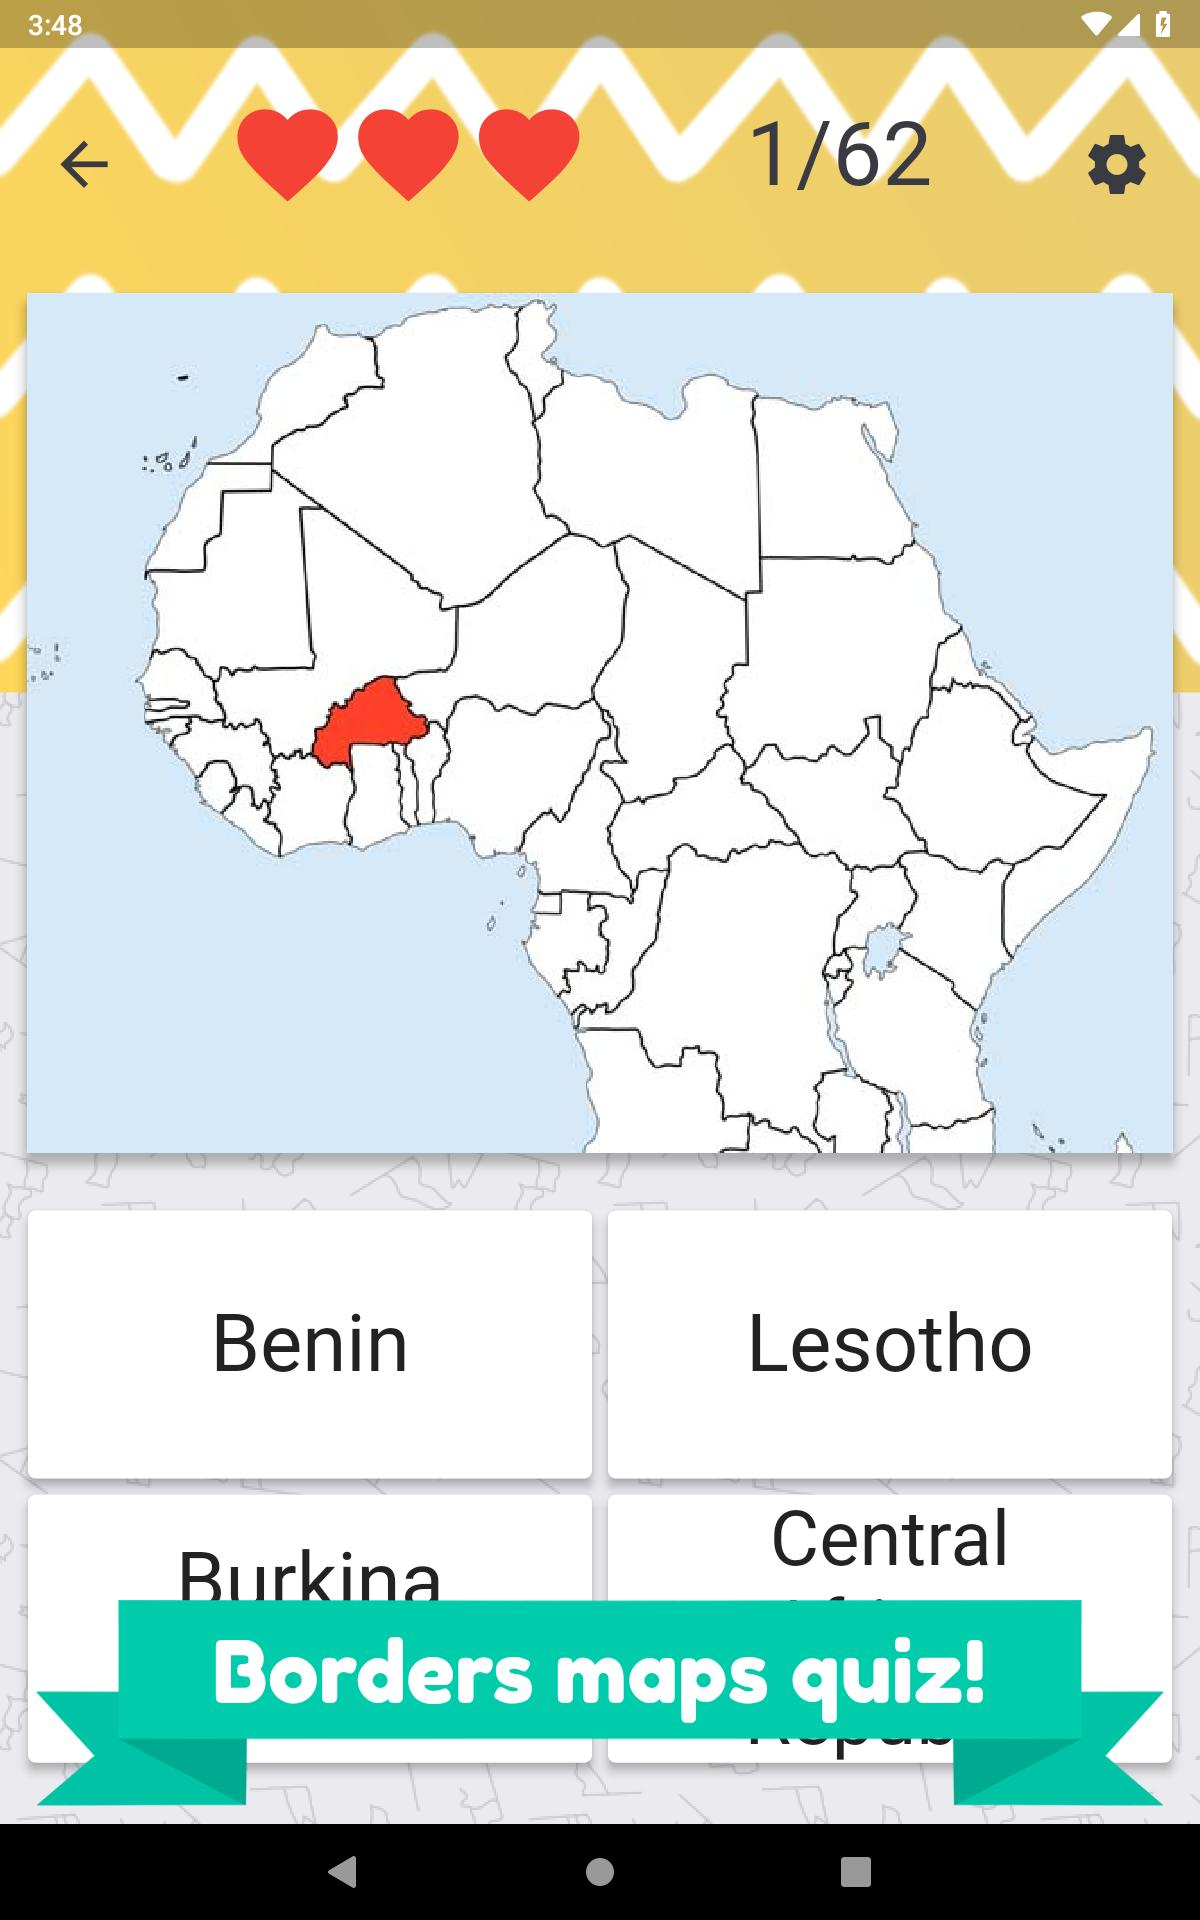 Africa countries quiz – flags, maps and capitals for Android - APK ...